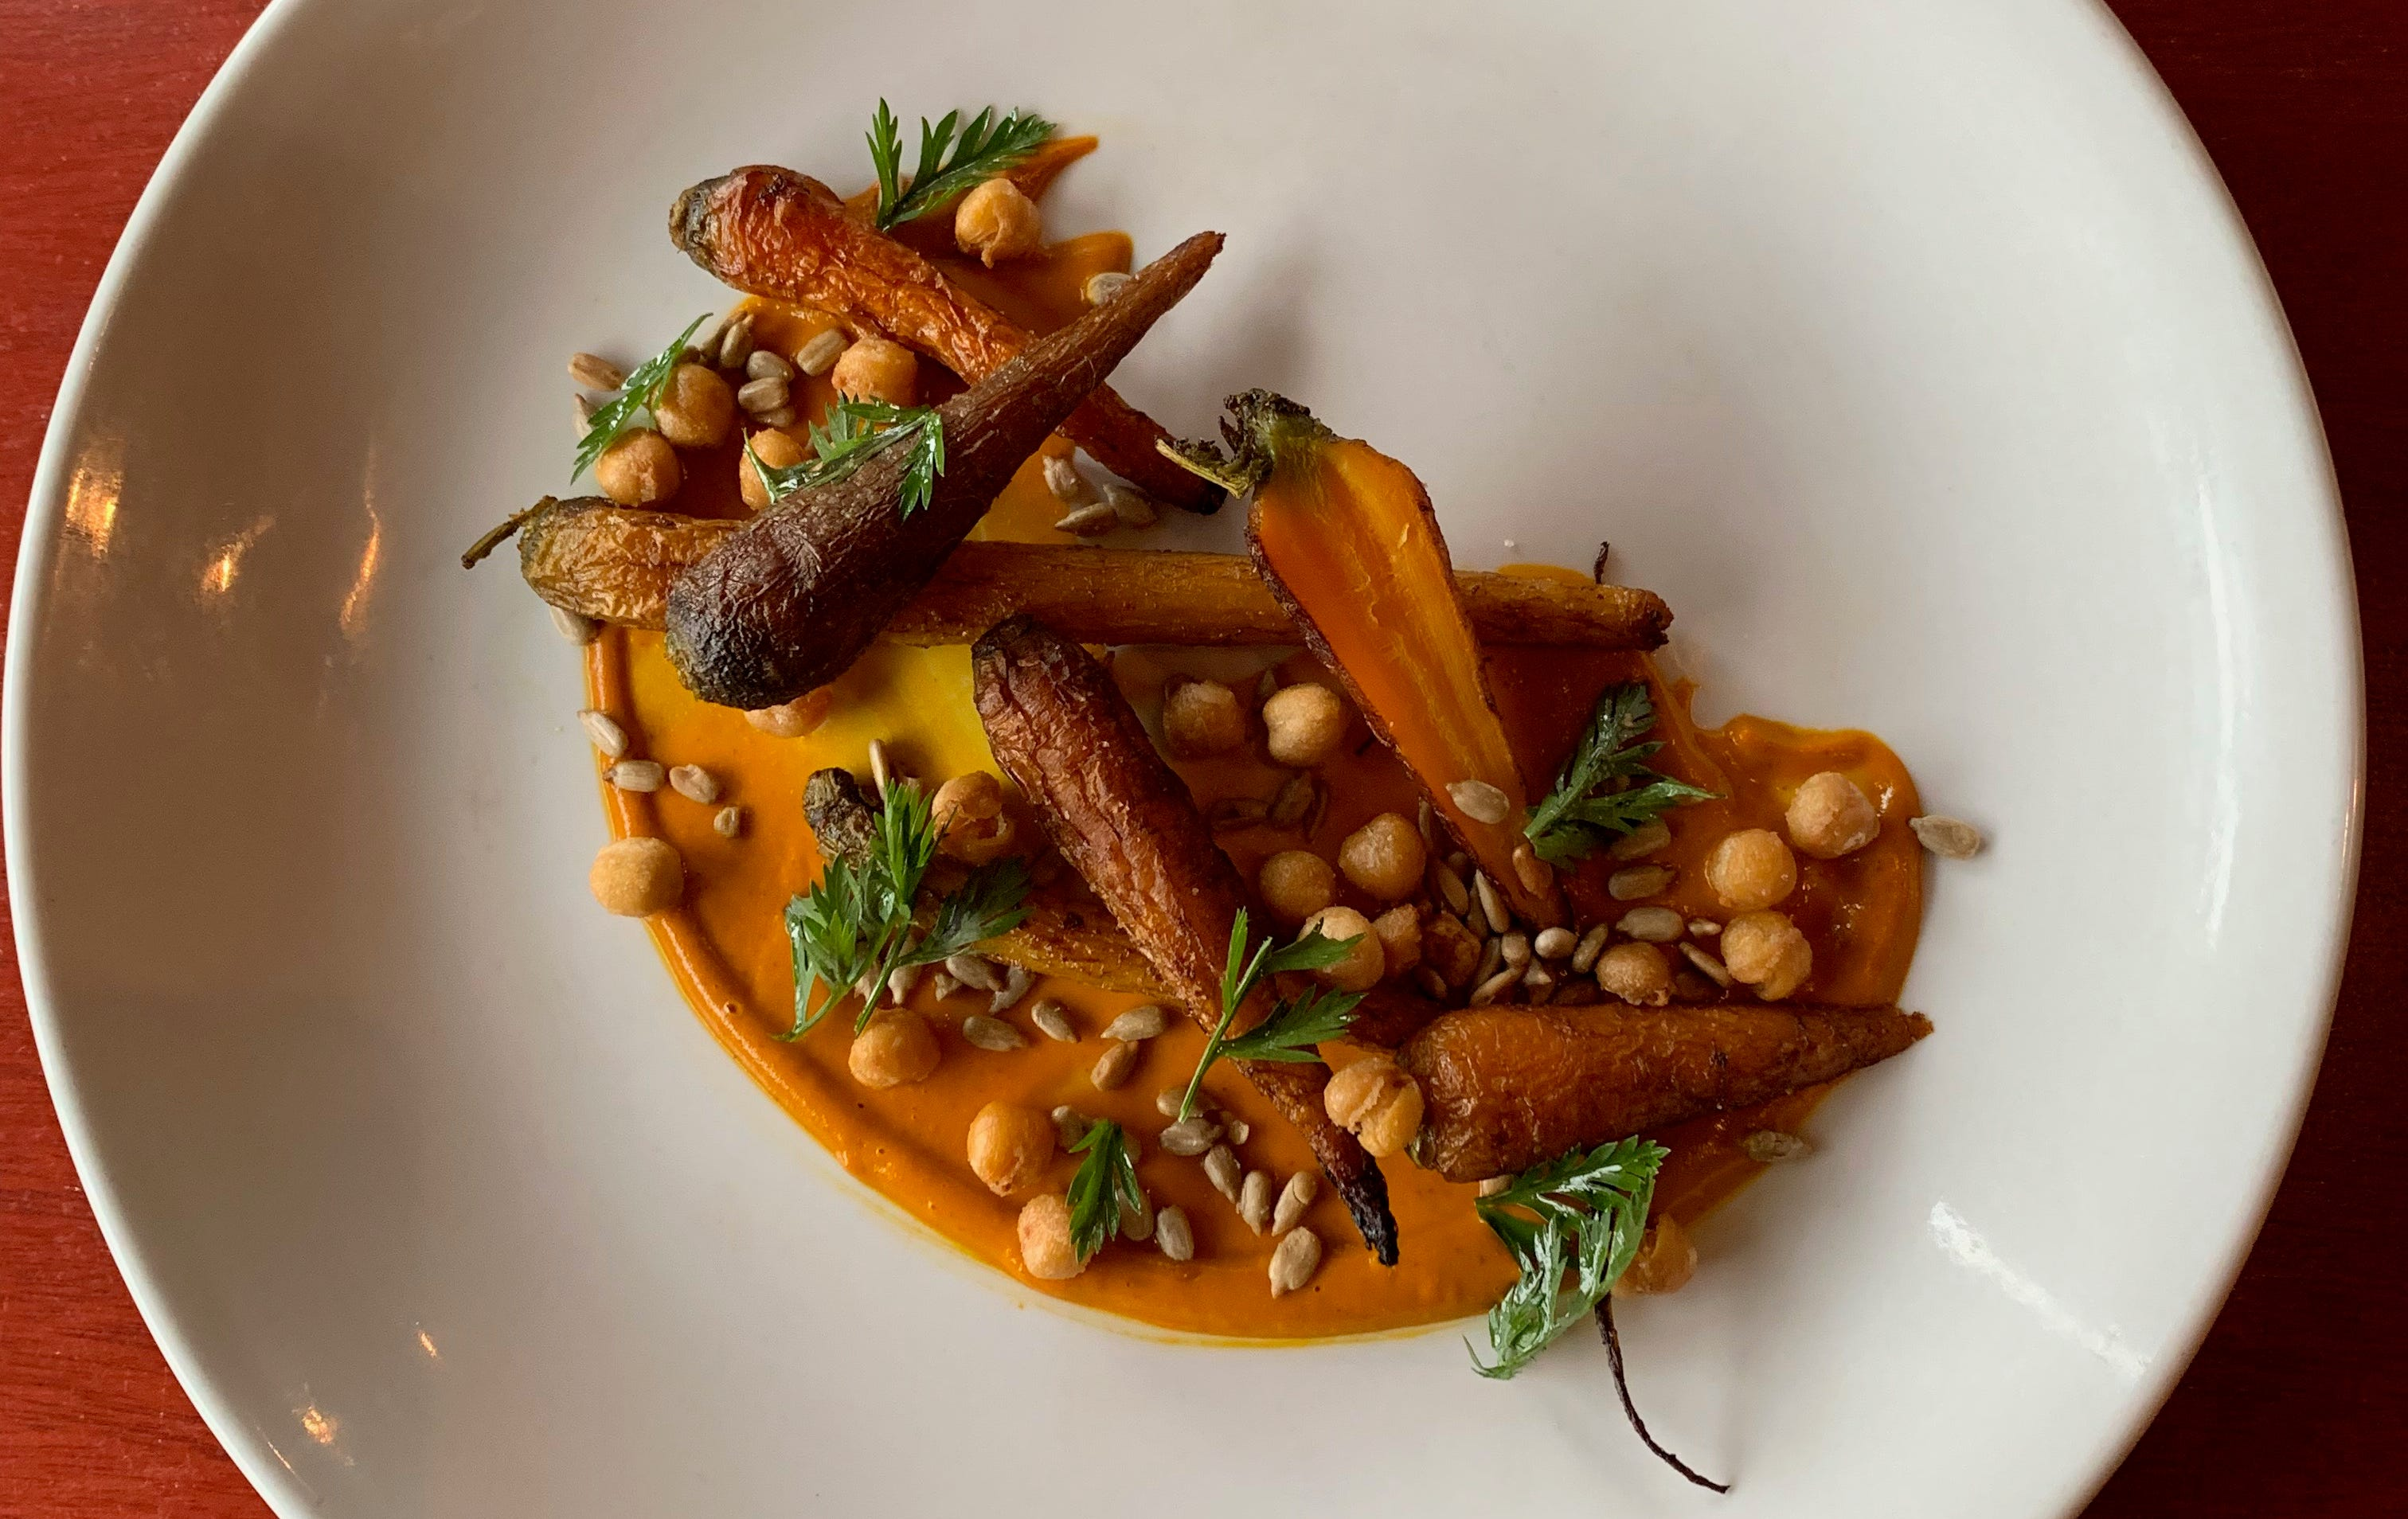 Carrot barbecue sauce is the bed for roast carrots, fried chickpeas and sunflower seeds, a dish at the Diplomat, 815 E. Brady St.